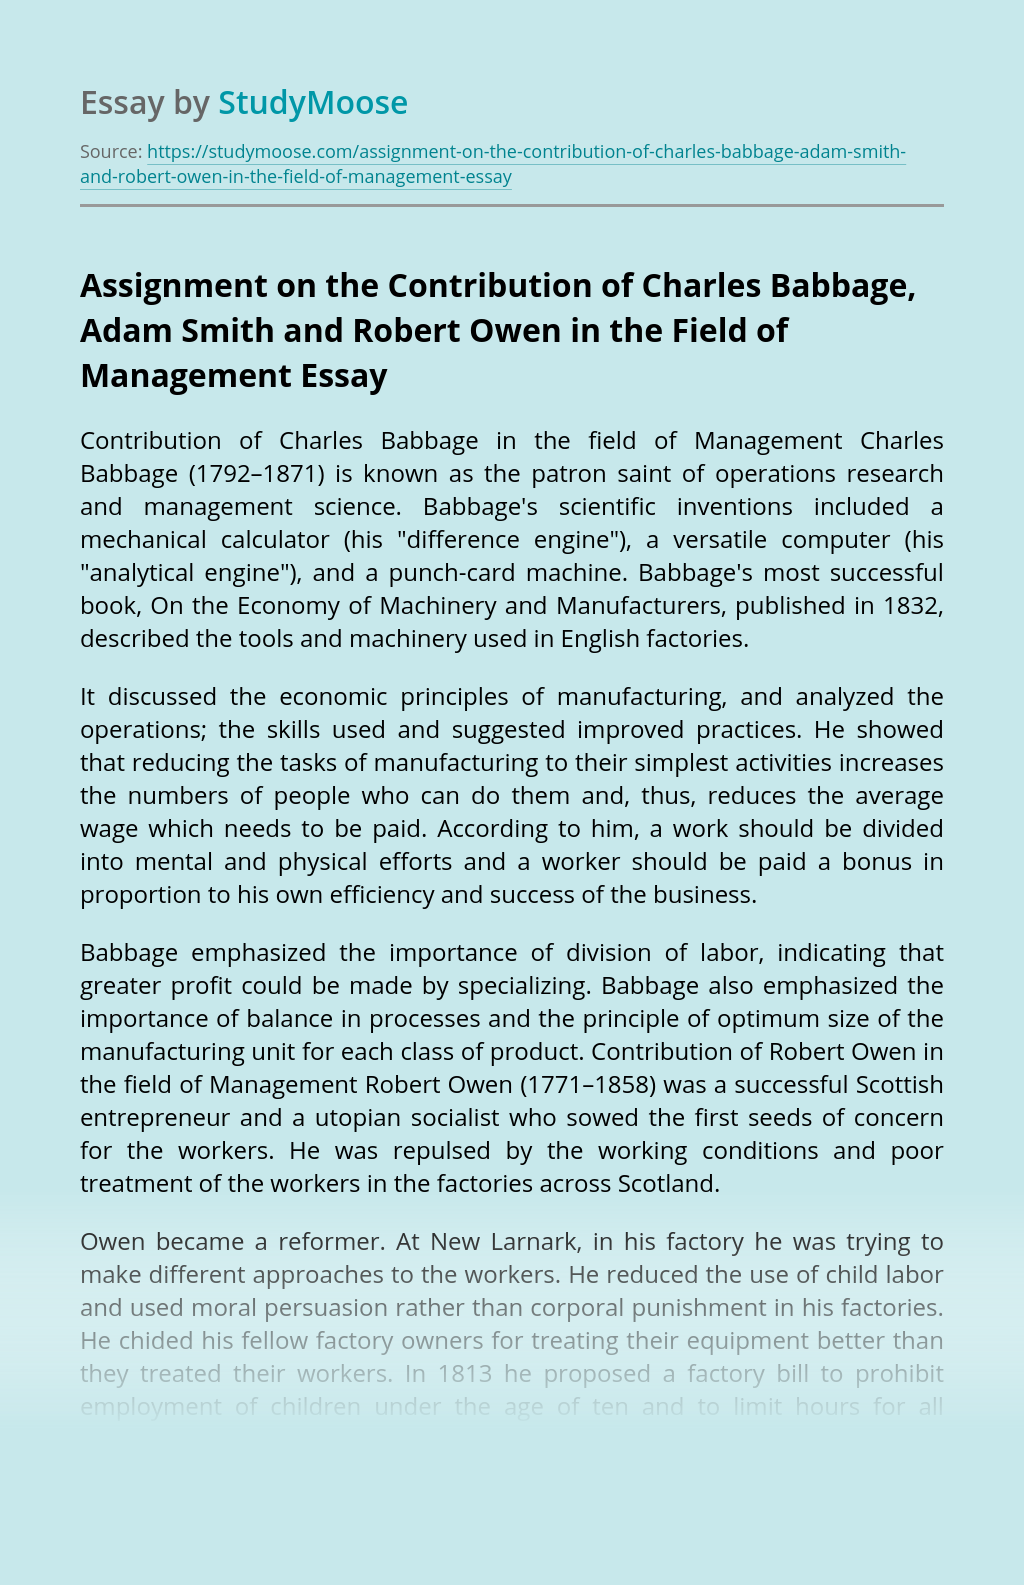 Assignment on the Contribution of Charles Babbage, Adam Smith and Robert Owen in the Field of Management